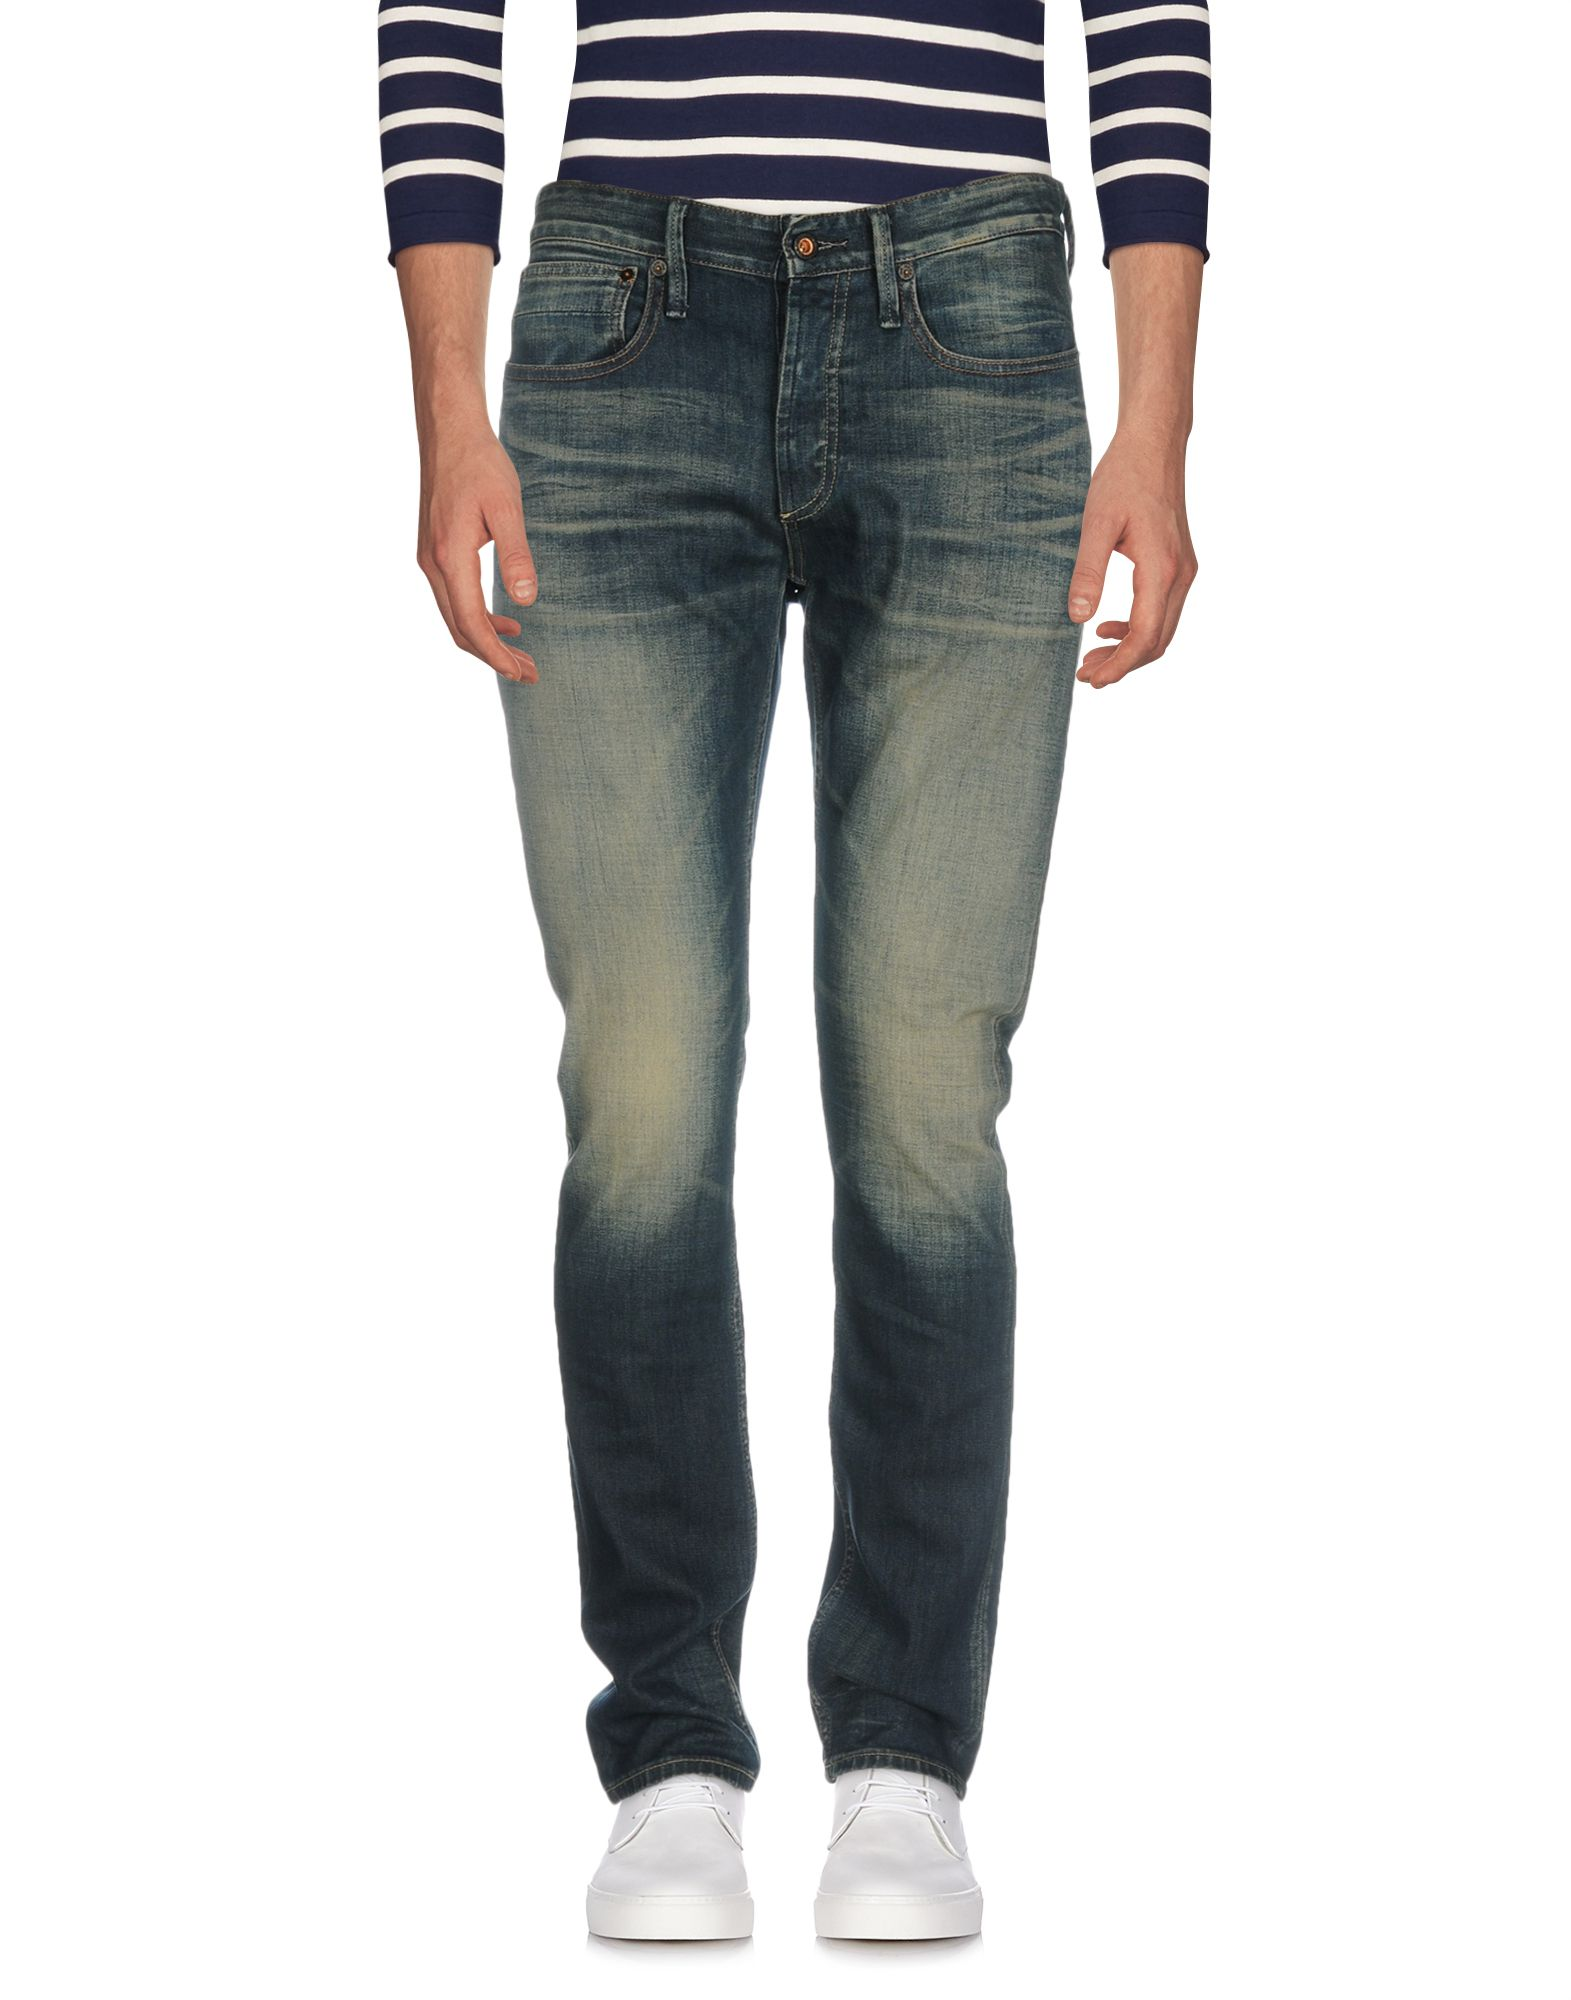 DENHAM Denim Pants in Blue